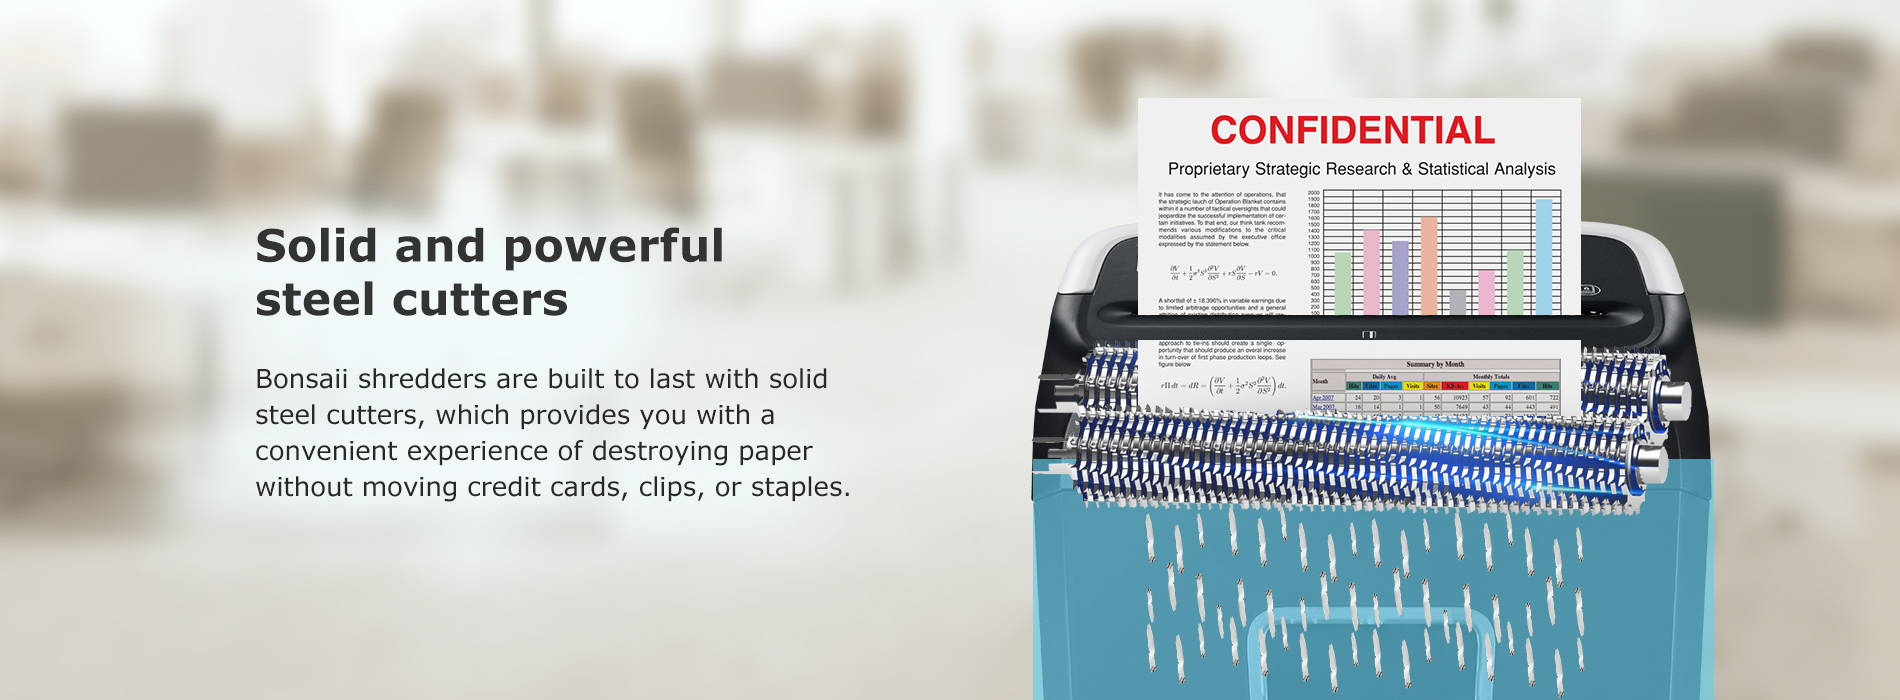 Solid and powerful steel cutters Bonsaii shredders are built to last with solid steel cutters, which provides you with a convenient experience of destroying paper without moving credit cards, clips, or staples.